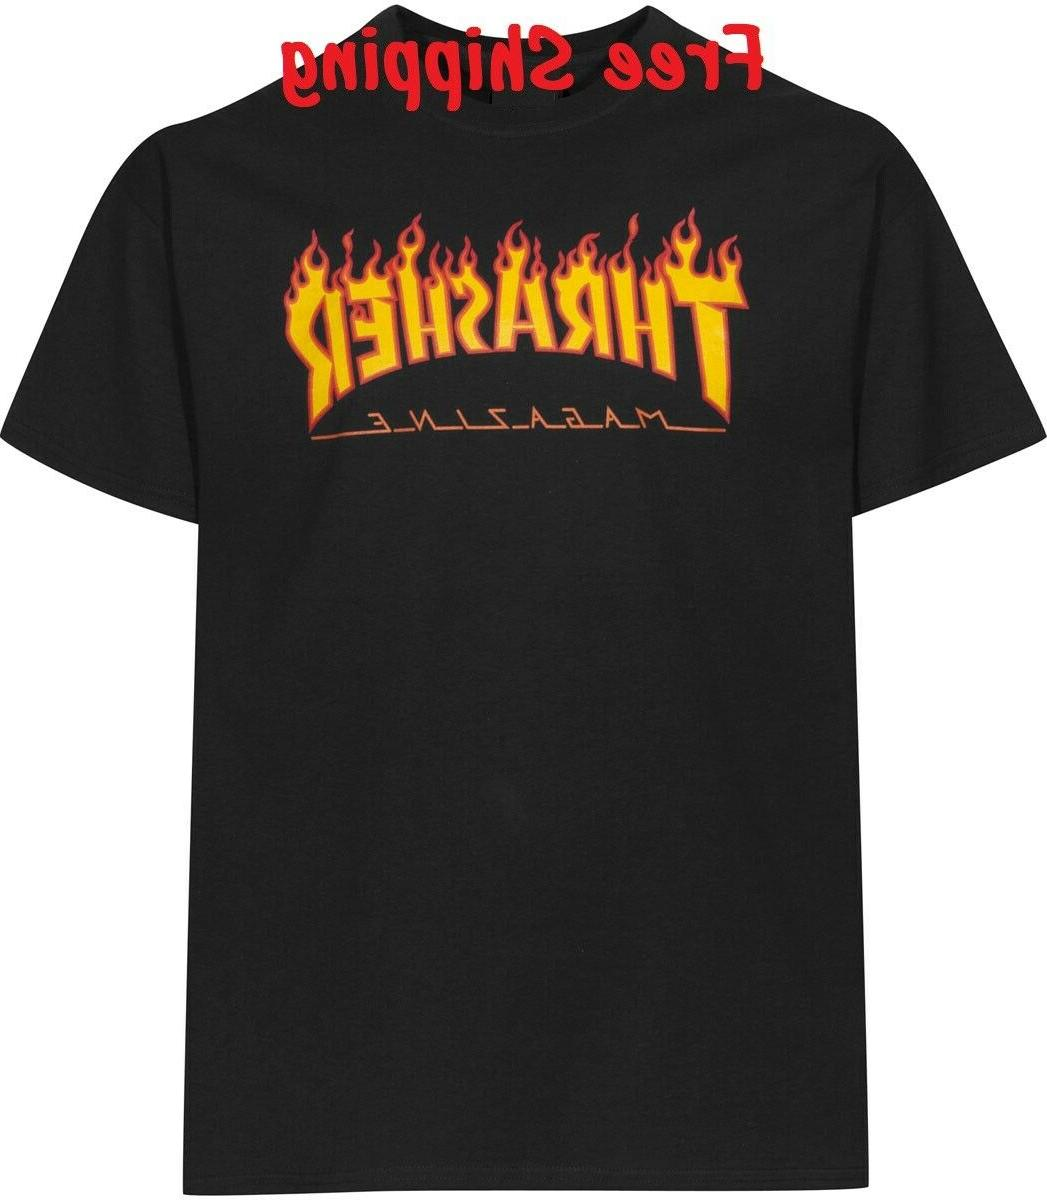 thrasher magazine t shirt skateboard men skateboarding